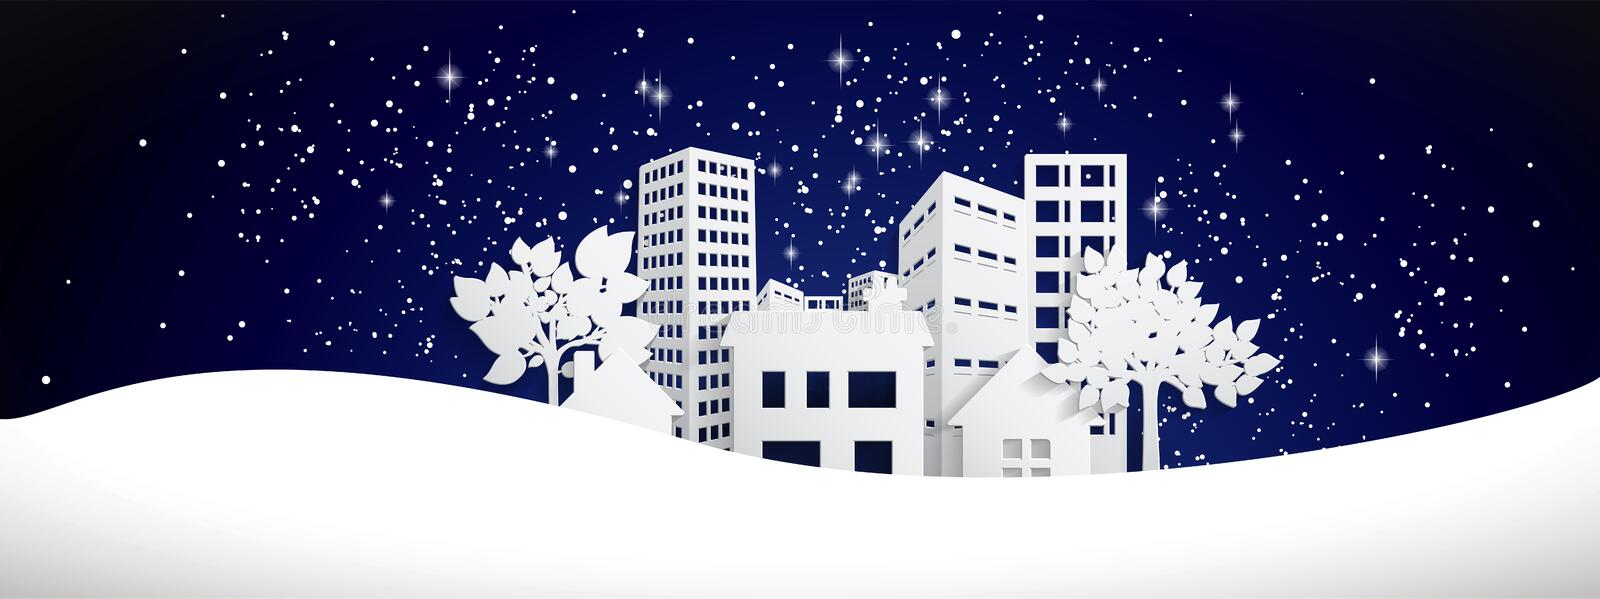 Snowy Paper town banner royalty free illustration